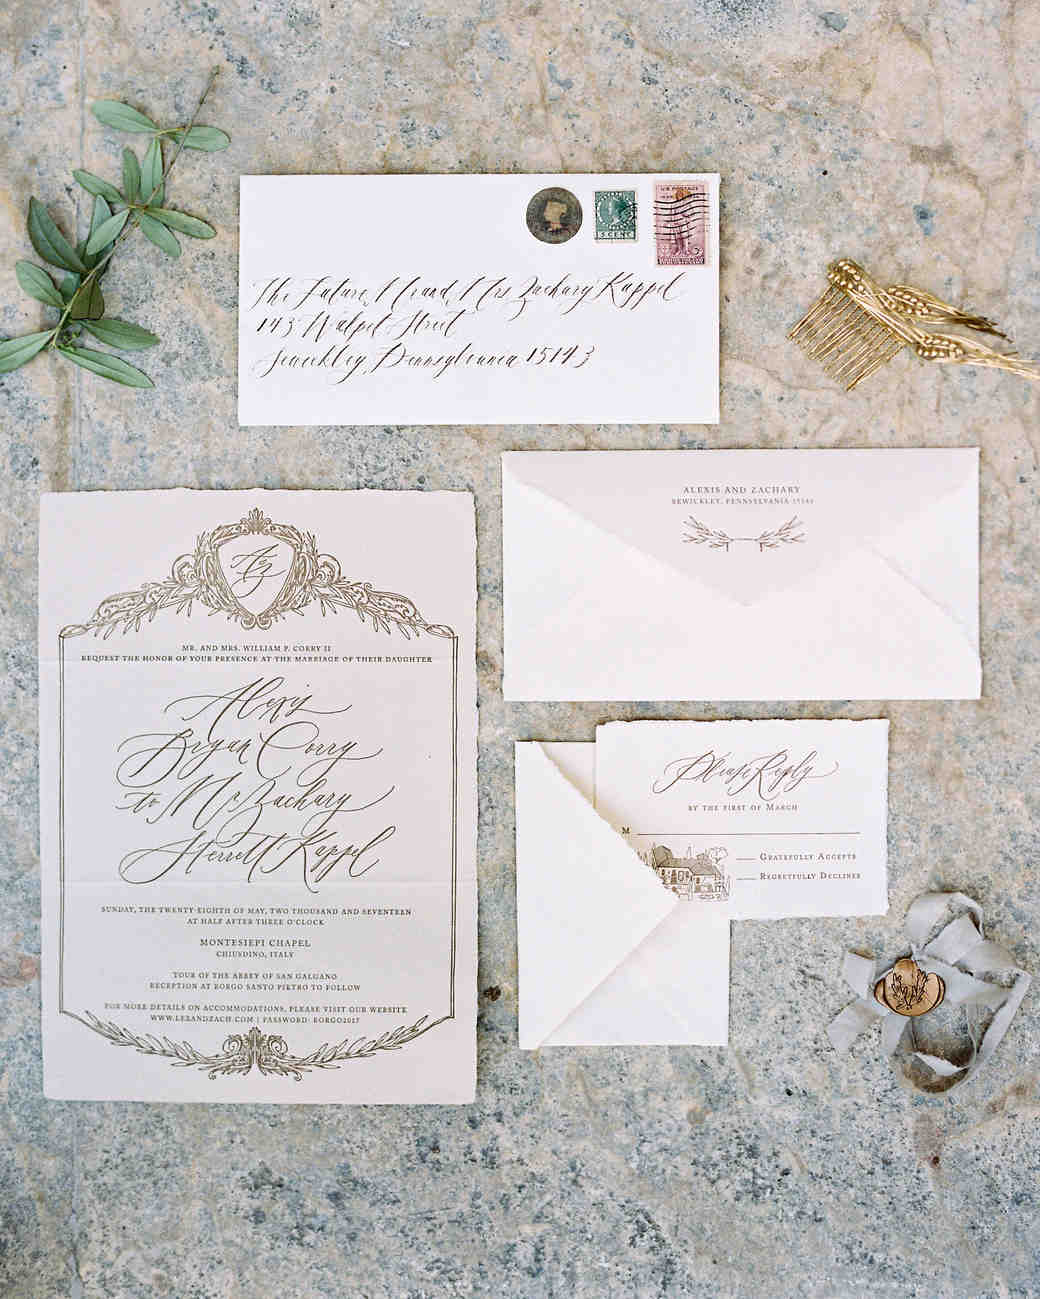 alexis zach wedding italy invitation